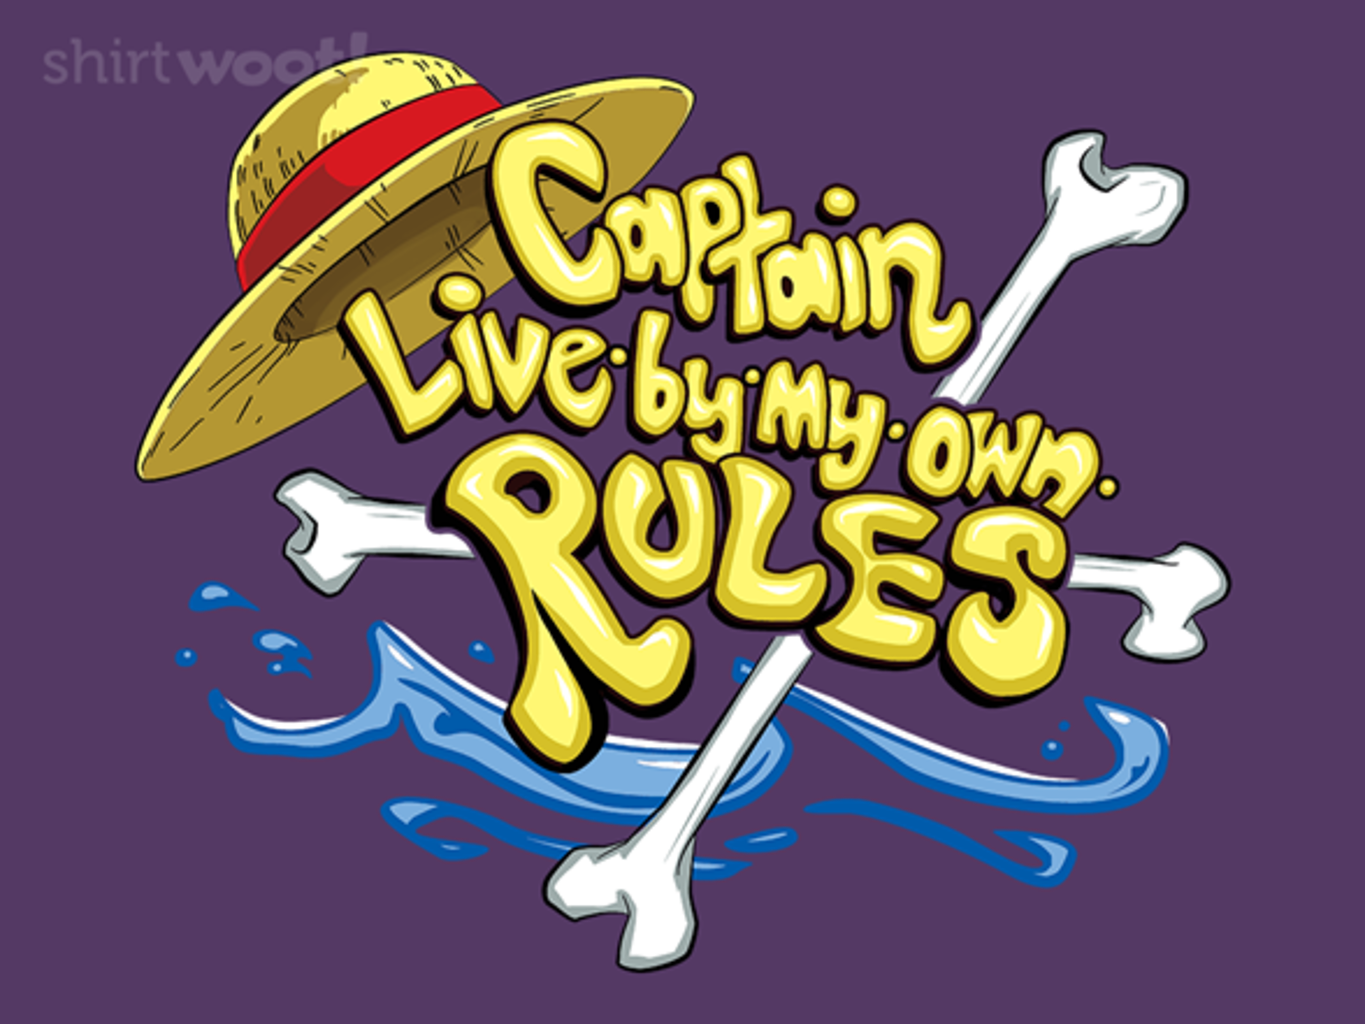 Woot!: Captain's Rules